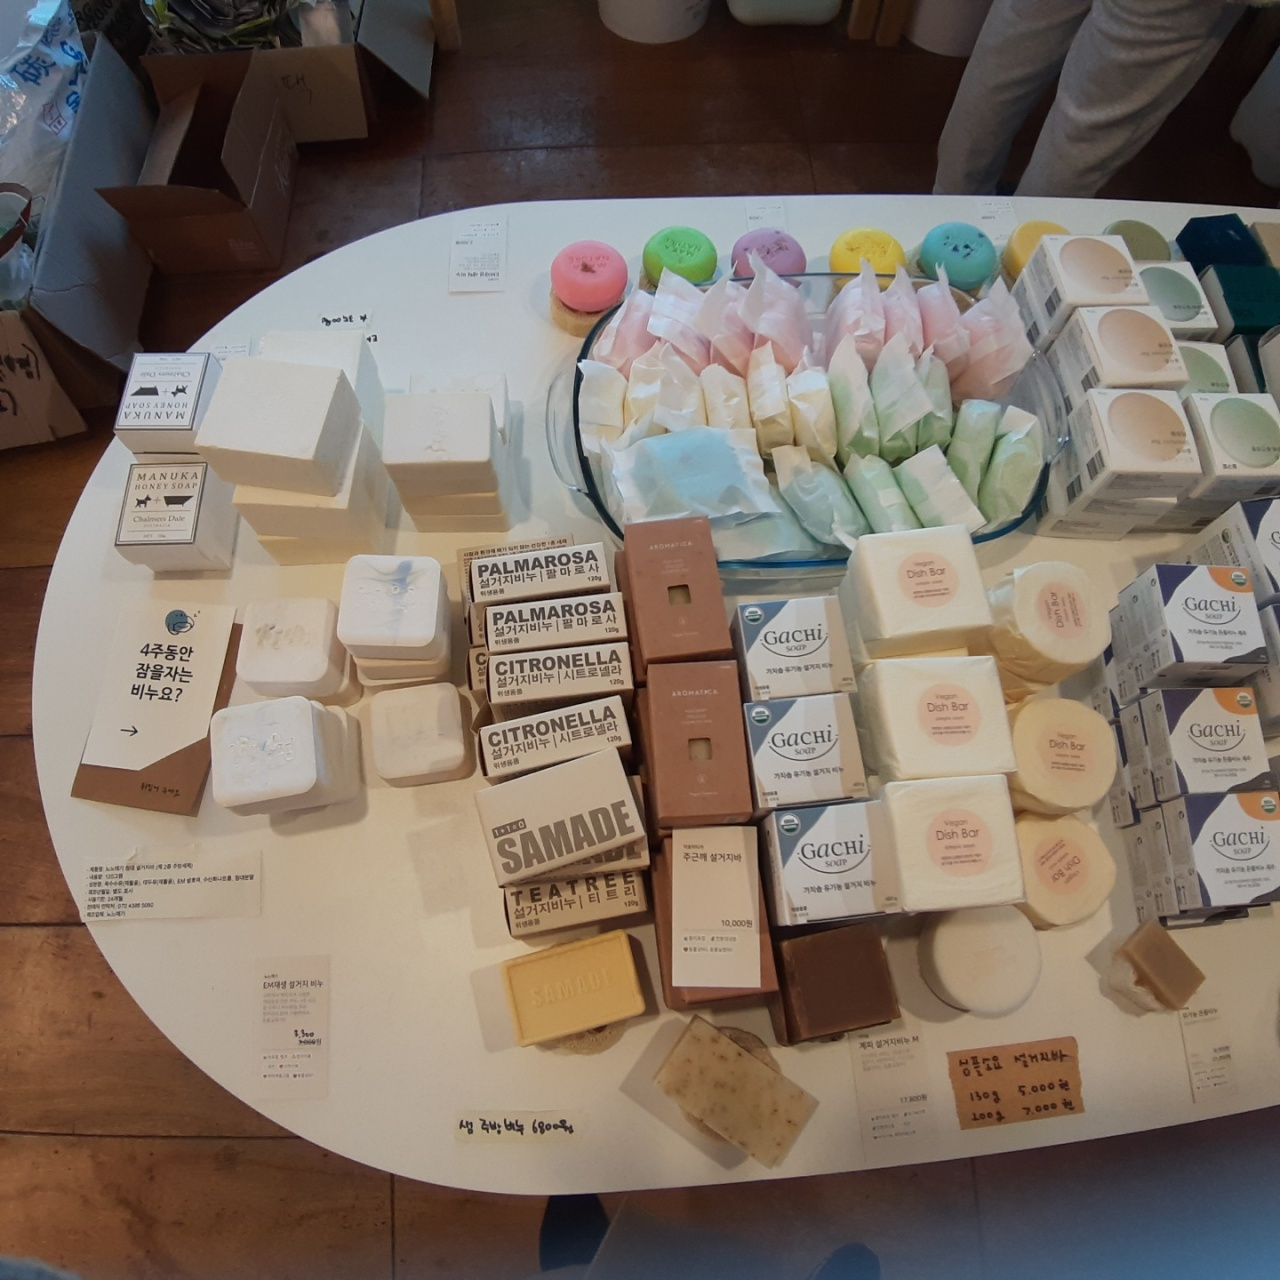 Soap bars for kitchen detergent, hair and body are displayed at Almang Market. (Shin Ji-hye/The Korea Herald)